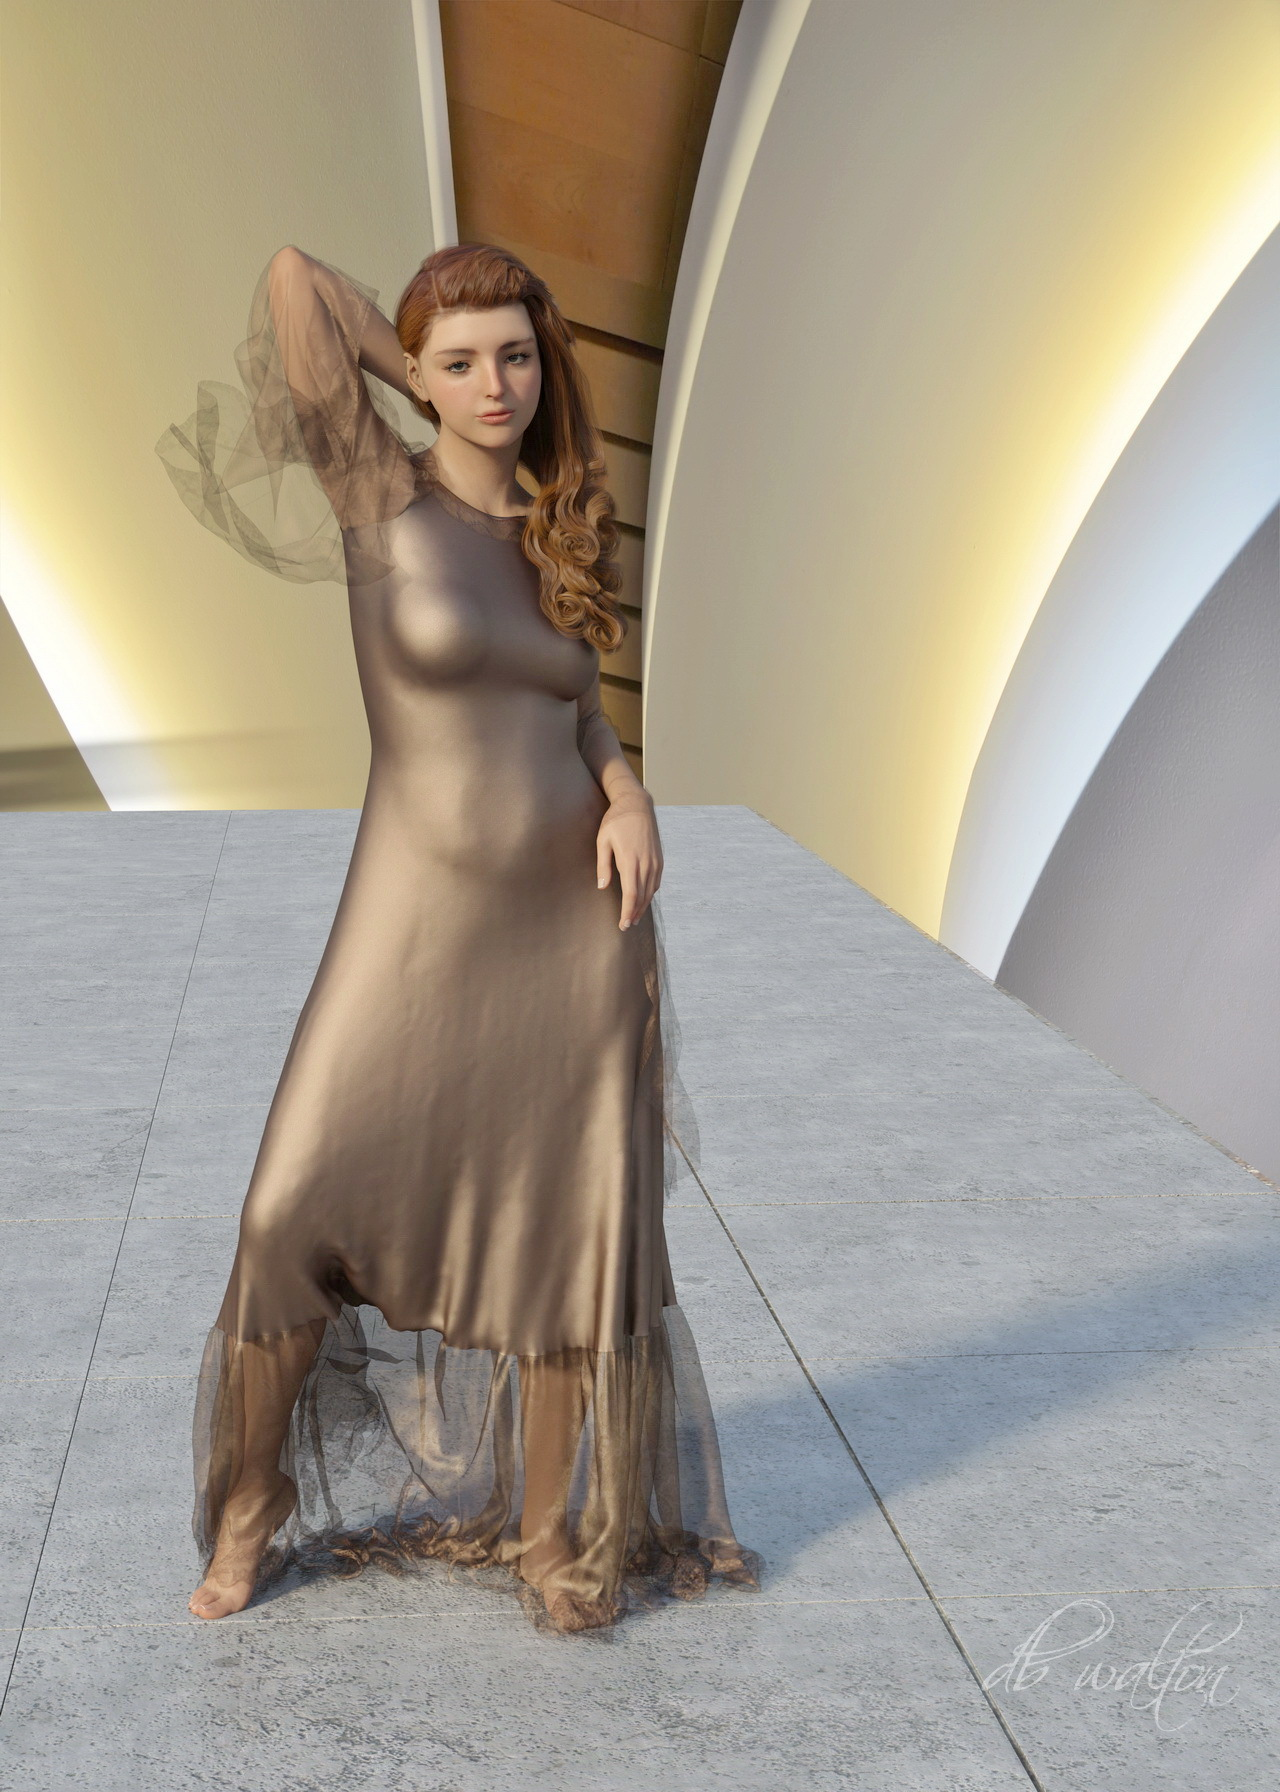 New Character 4075 - My New Dress by dbwalton